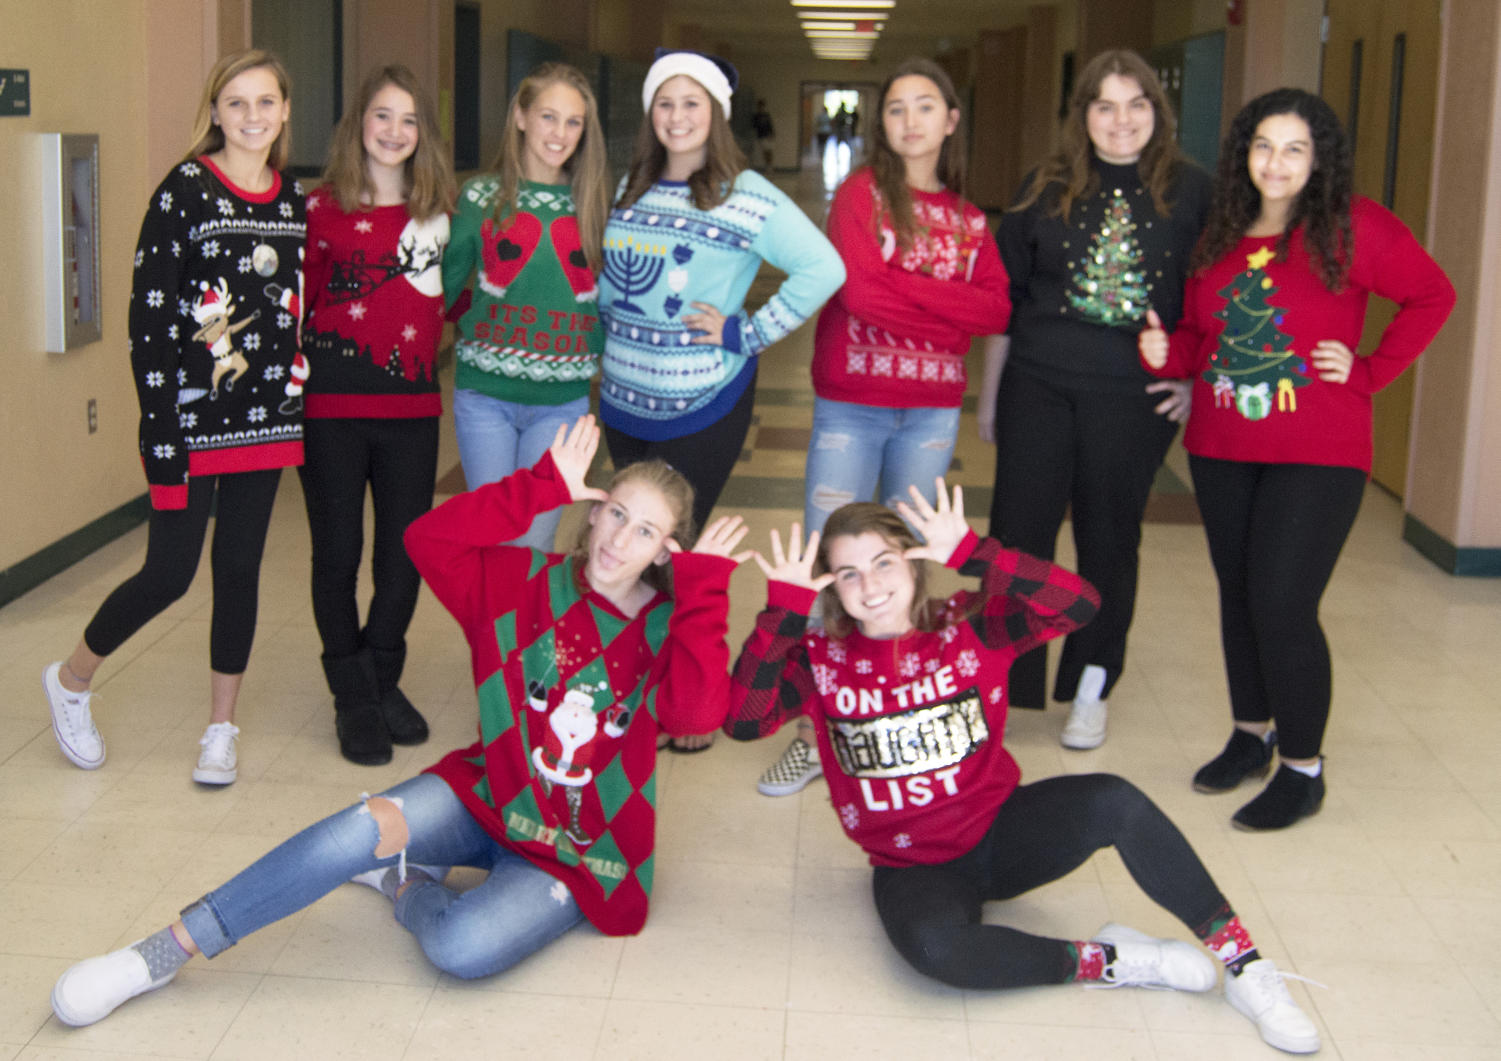 Jupiter War Cry staff shows off their festive holiday sweaters.